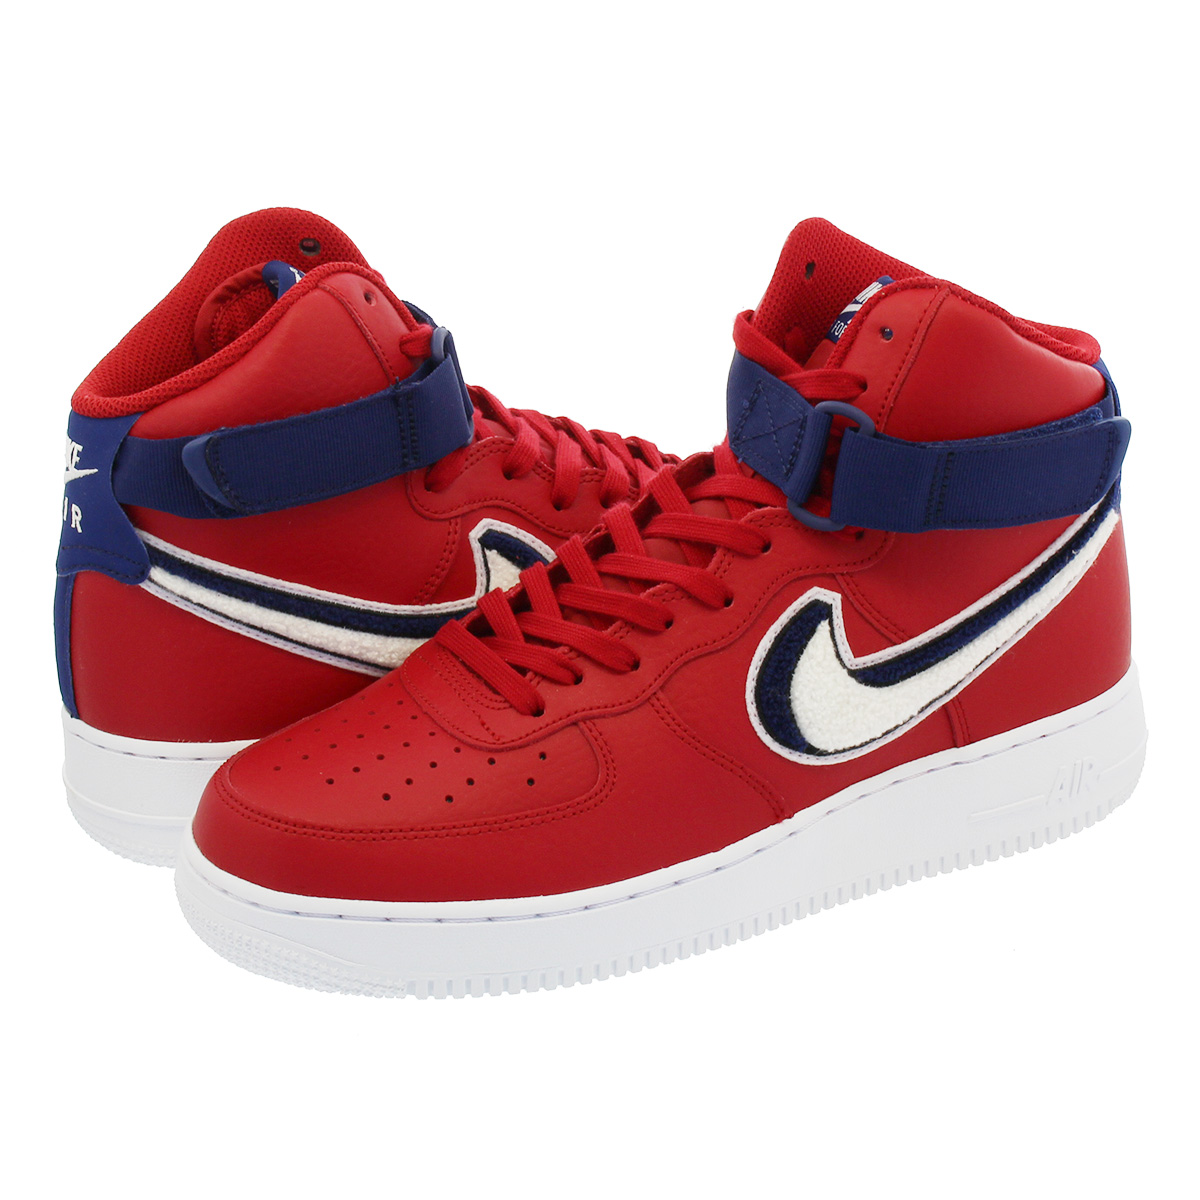 the best attitude 325e5 bffd4 ... where can i buy nike air force 1 high 07 lv8 nike air force 1 high